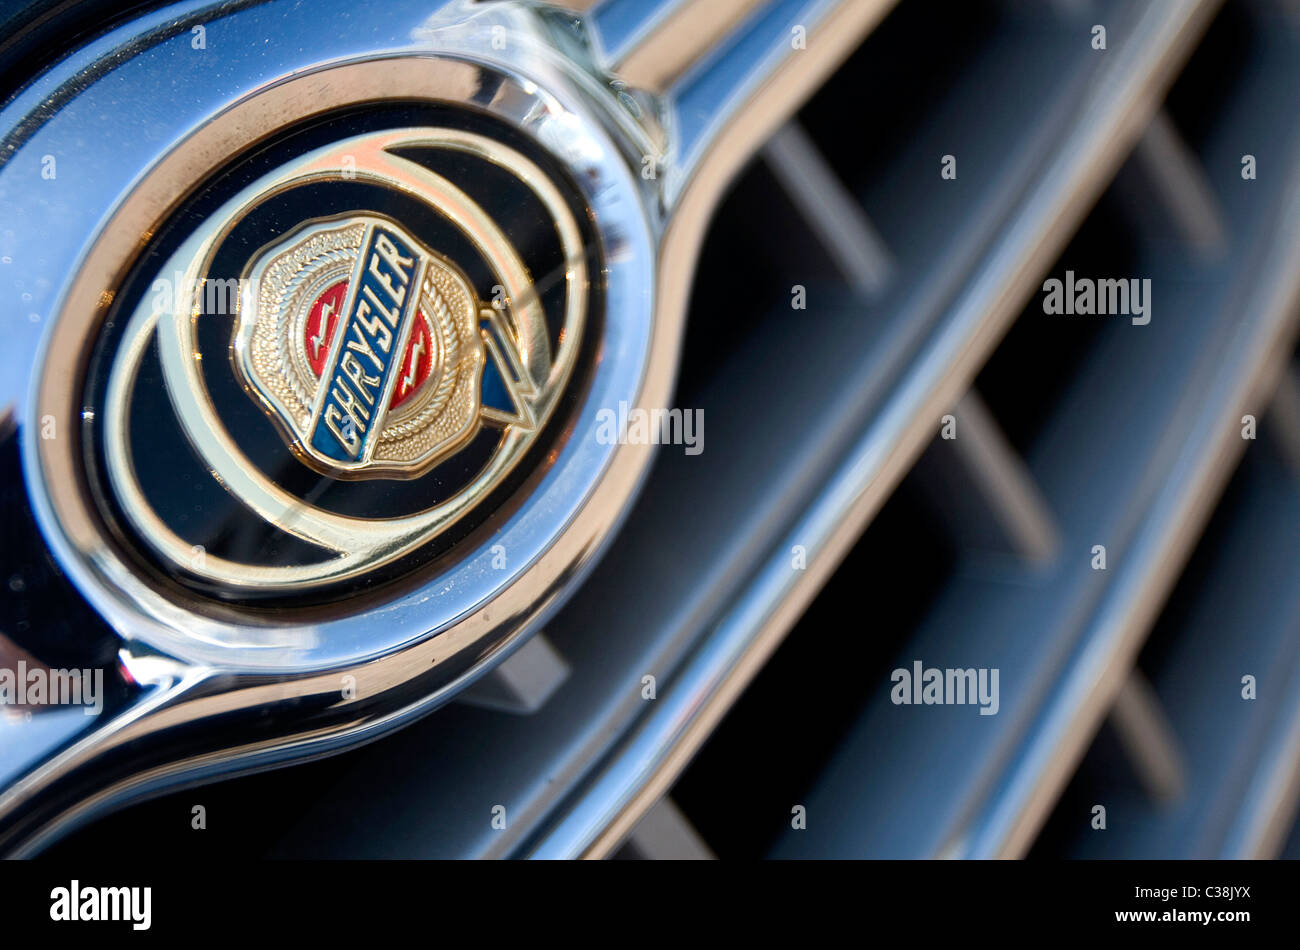 Chrysler Cars Stock Photos Amp Chrysler Cars Stock Images